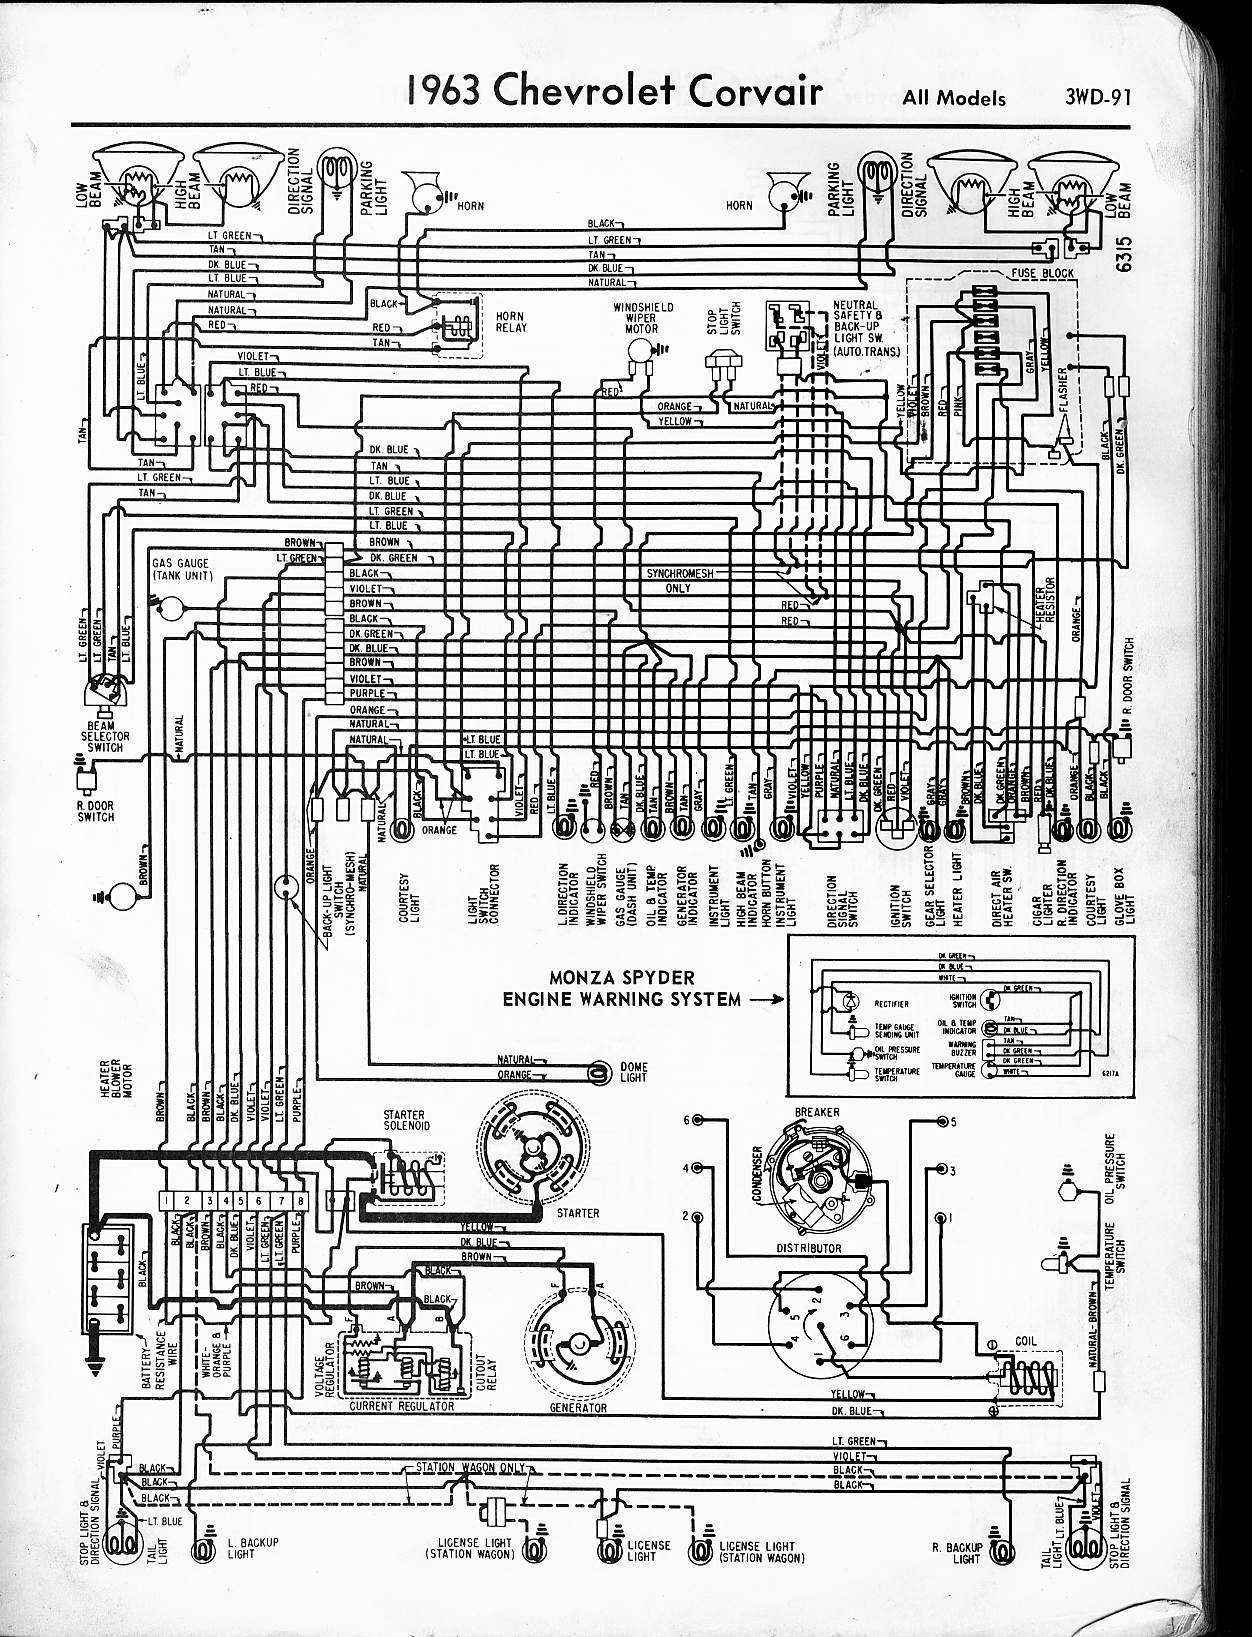 MWireChev63_3WD 091 57 65 chevy wiring diagrams 1963 chevrolet c30 wiring harness diagram at gsmx.co